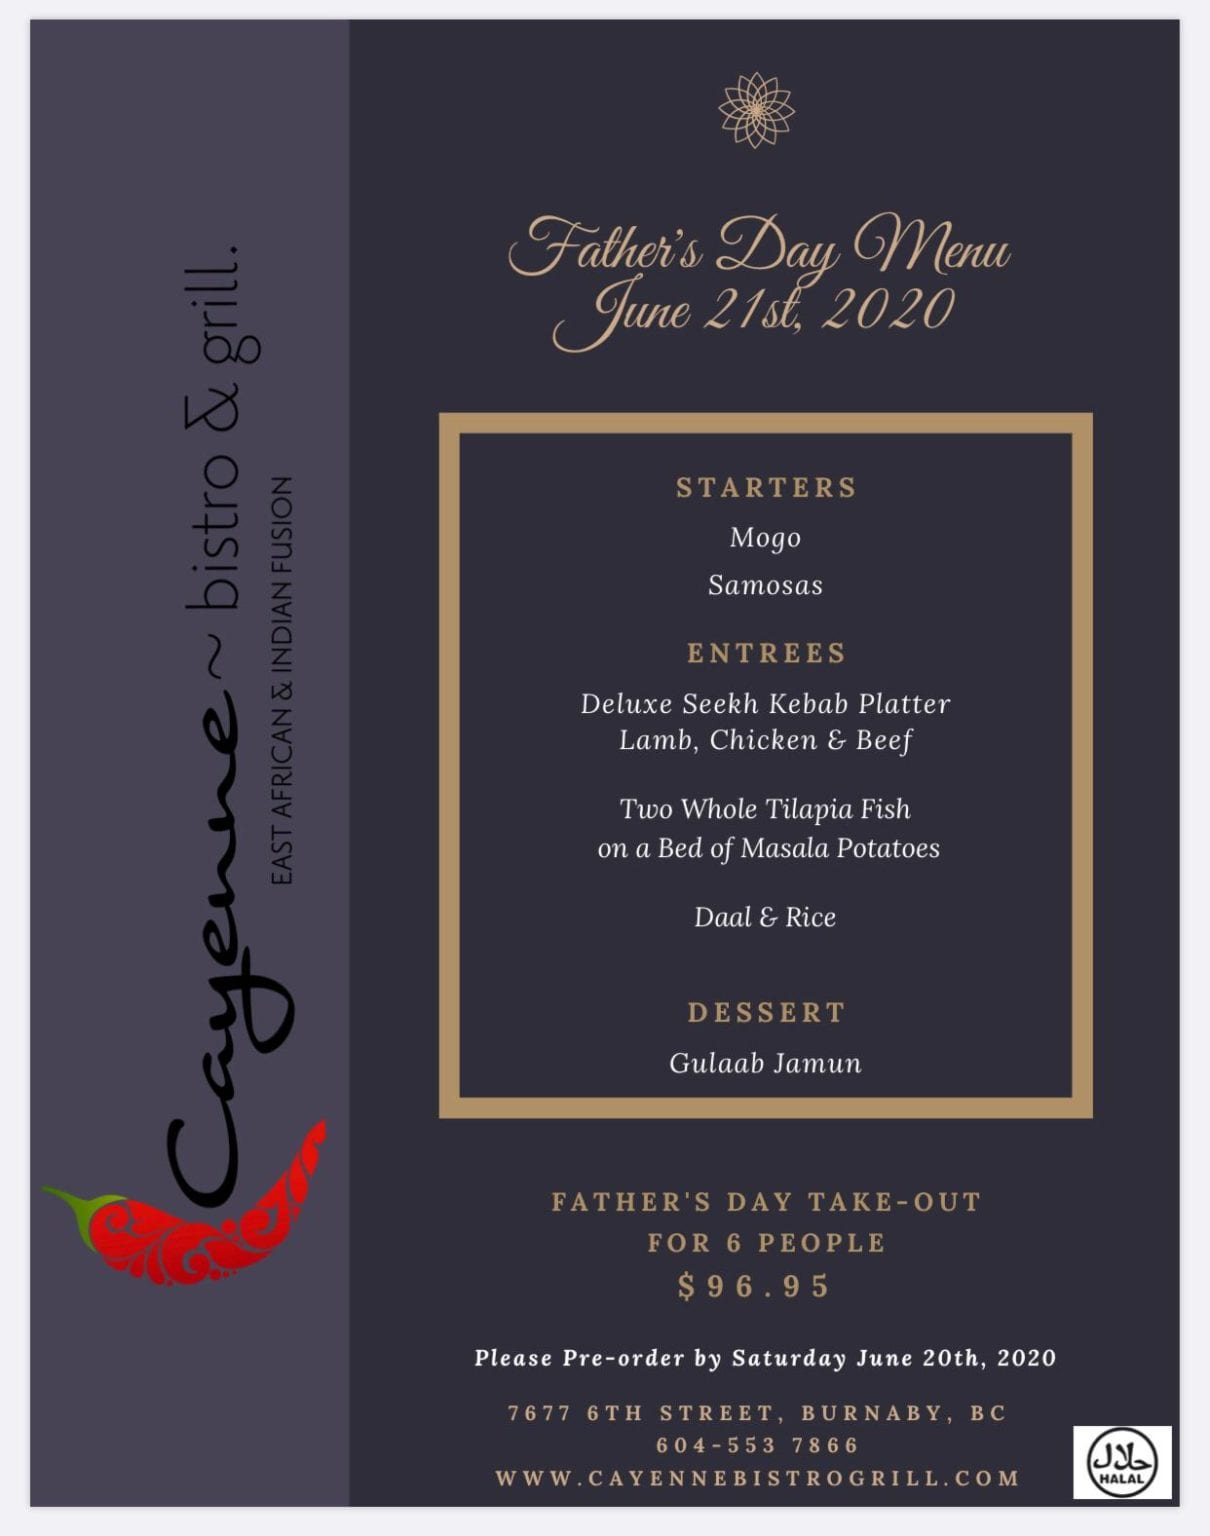 Fathers Day Special Menu